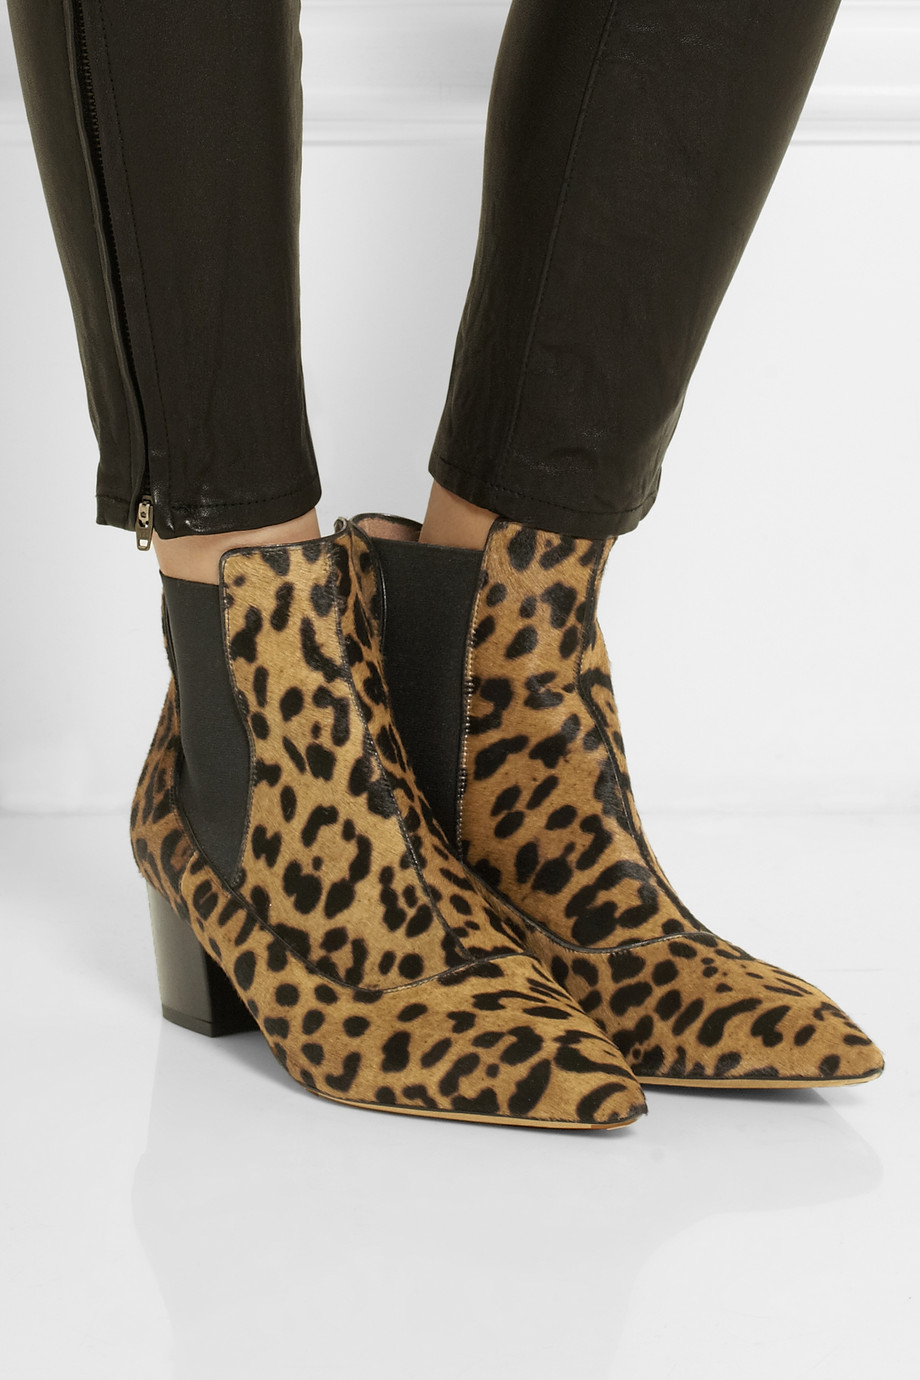 Tabitha simmons Shadow Leopard-print Calf Hair Ankle Boots | Lyst